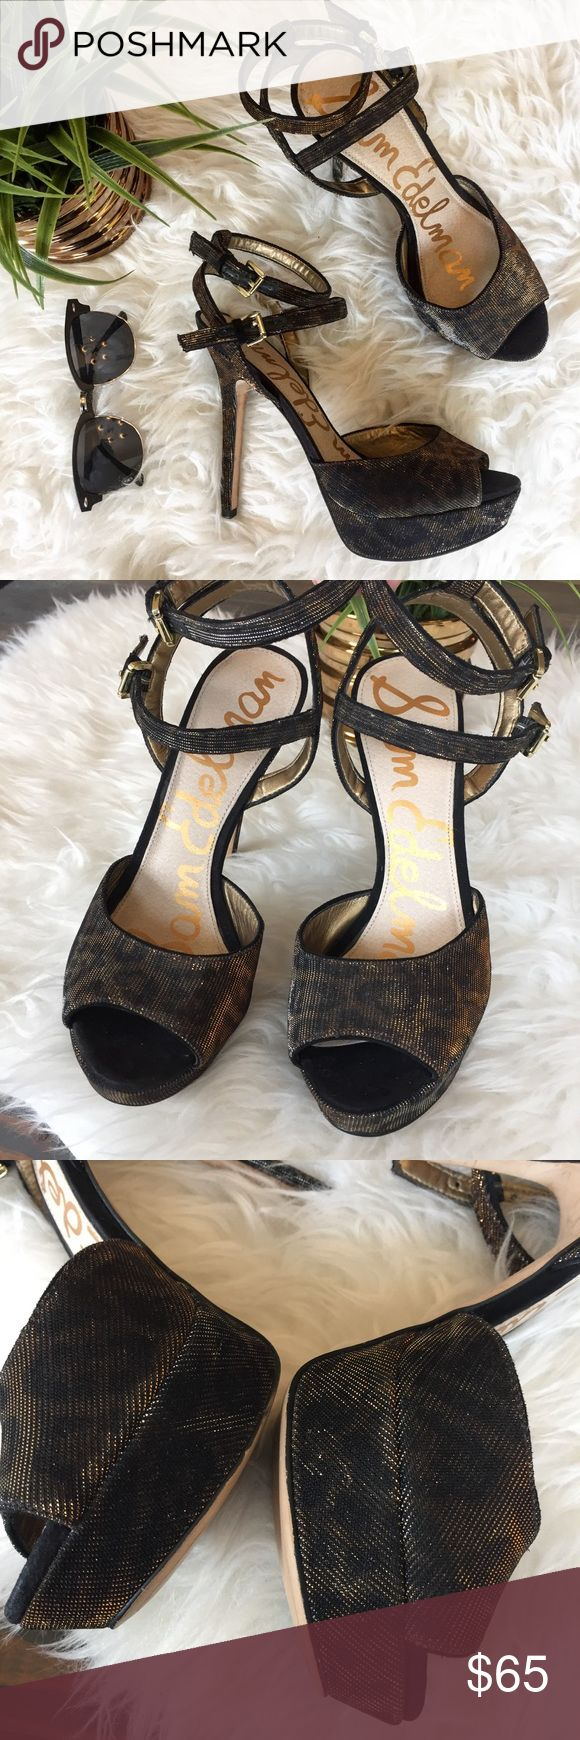 """Sam Edelman Metallic Cheetah Heels Only worn a couple times. Perfect to dress up an outfit. Have a nice sheen to them. Heel is approx 5"""" and a 1"""" platform. I'm usually an 8 but the 8.5 fits perfect. Small flaw on back of heels in last picture isn't noticeable unless you're up close looking Sam Edelman Shoes Heels"""